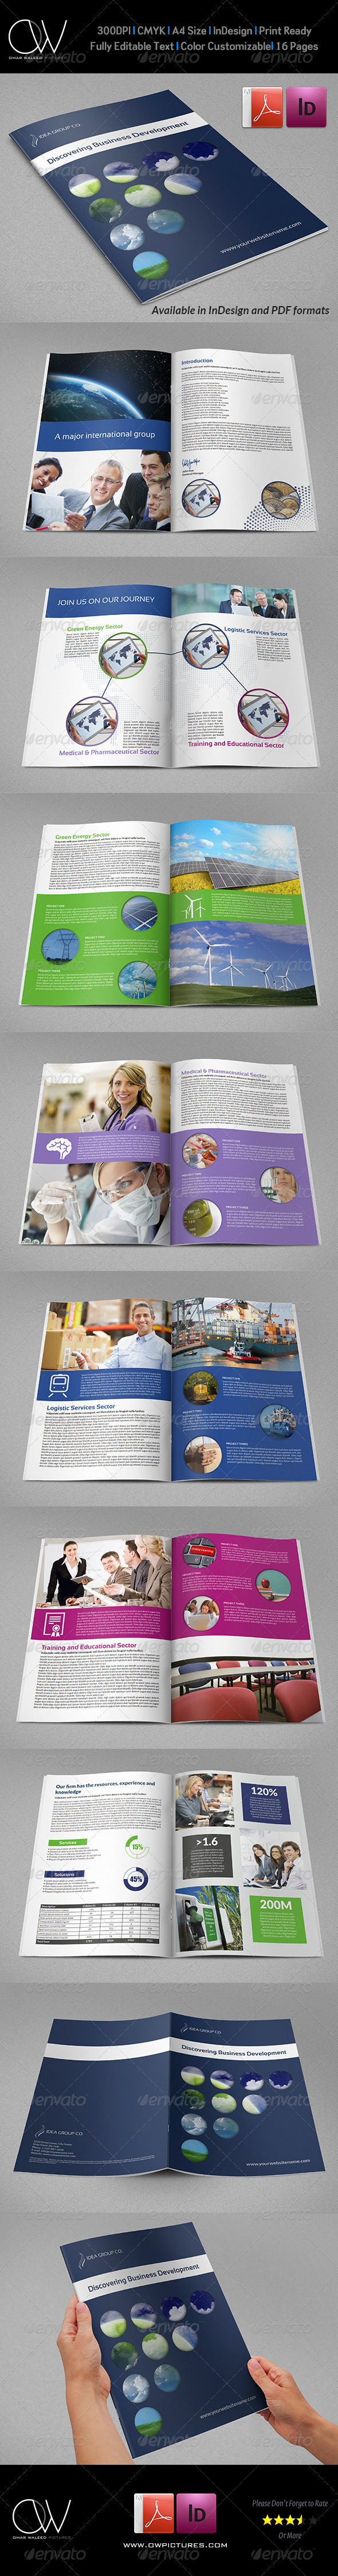 Corporate Brochure Template Vol.33 - 16 Pages - Corporate Brochures